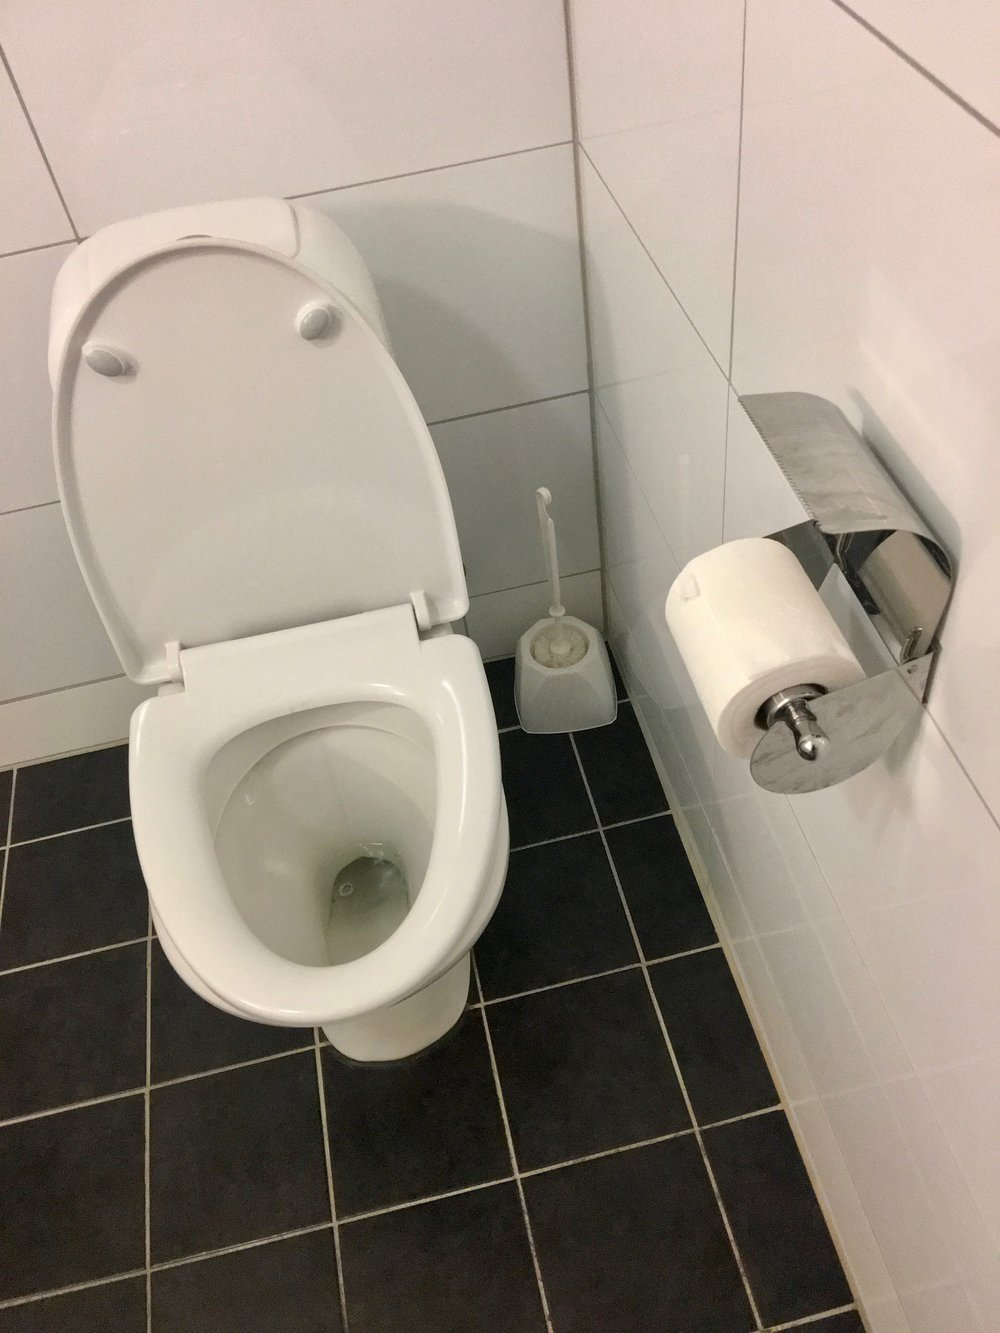 Toilet,_toilet_paper,_toilet_brush,_etc._in_a_bathroom_in_small_hotel_in_Tysnes,_Hordaland,_Norway_2018-03-18_C._Also_wall_and_floor_tiles.jpg